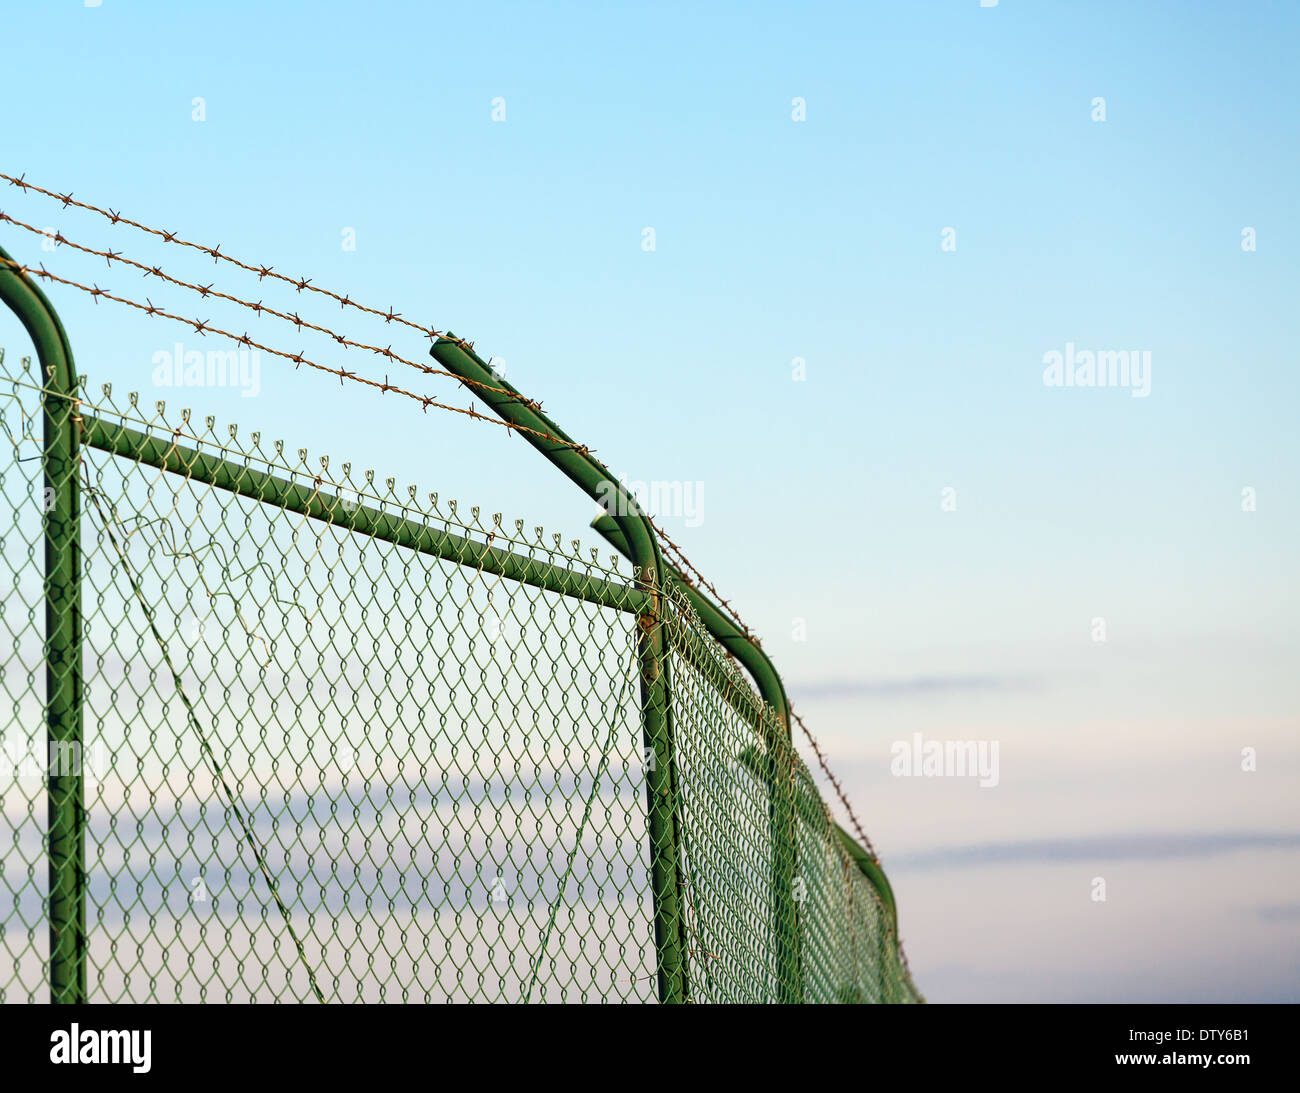 Mesh fence with barbed wire on a background of blue sky - Stock Image